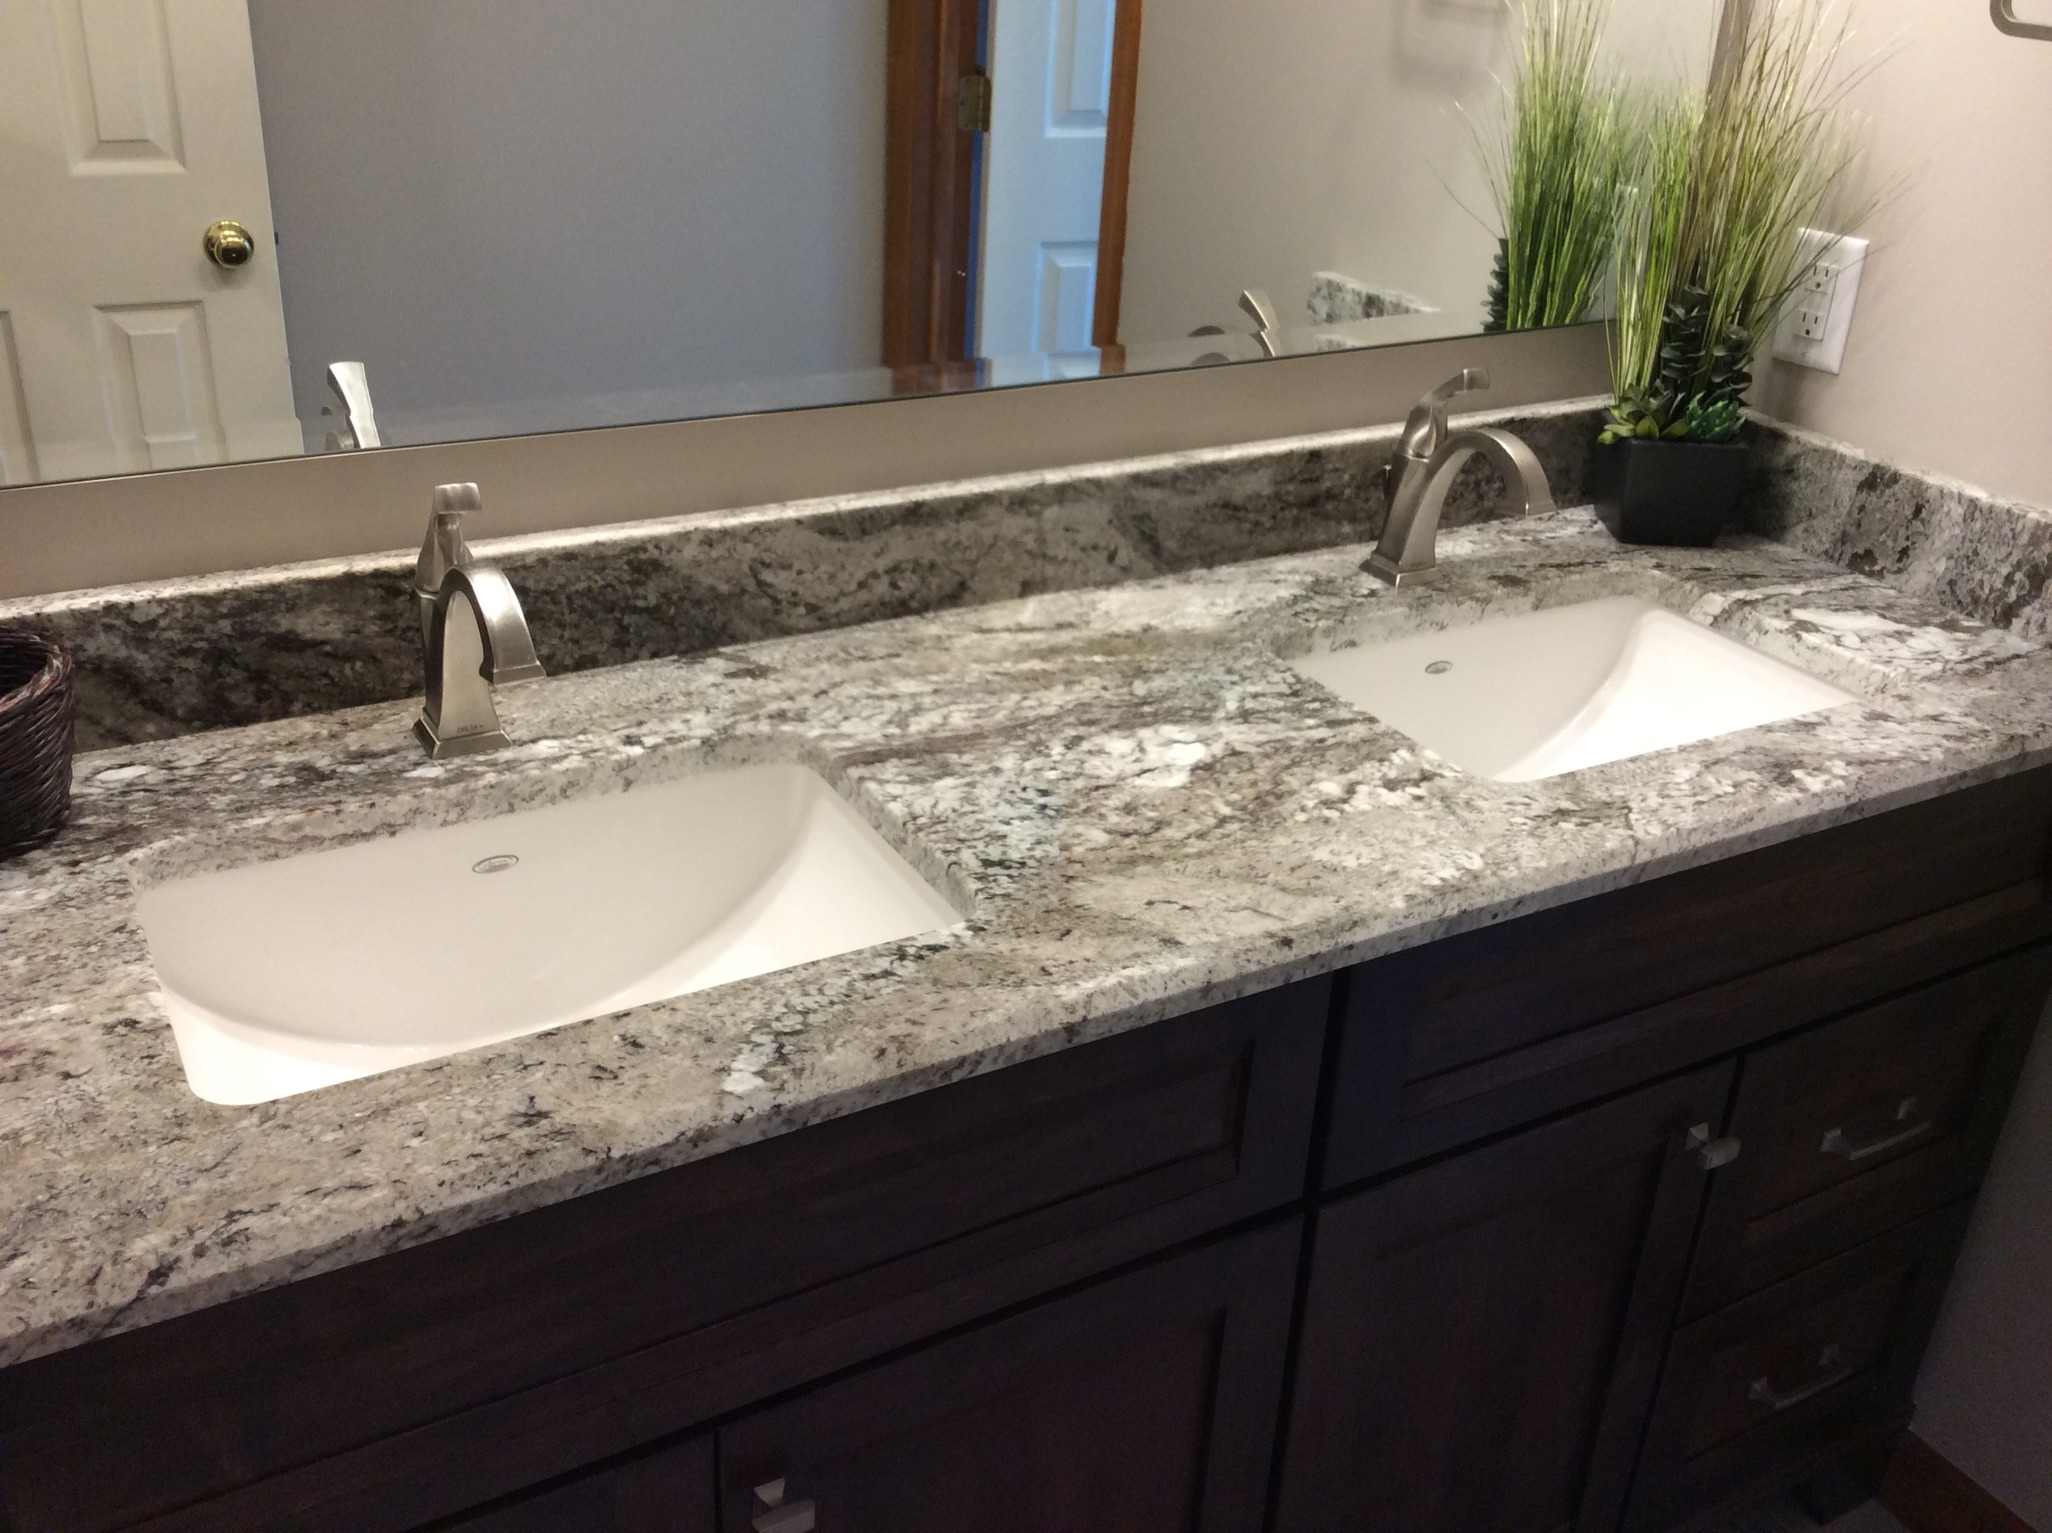 bathroom sink granite countertop countertops nelson kitchen amp bath mars pa pittsburgh 16511